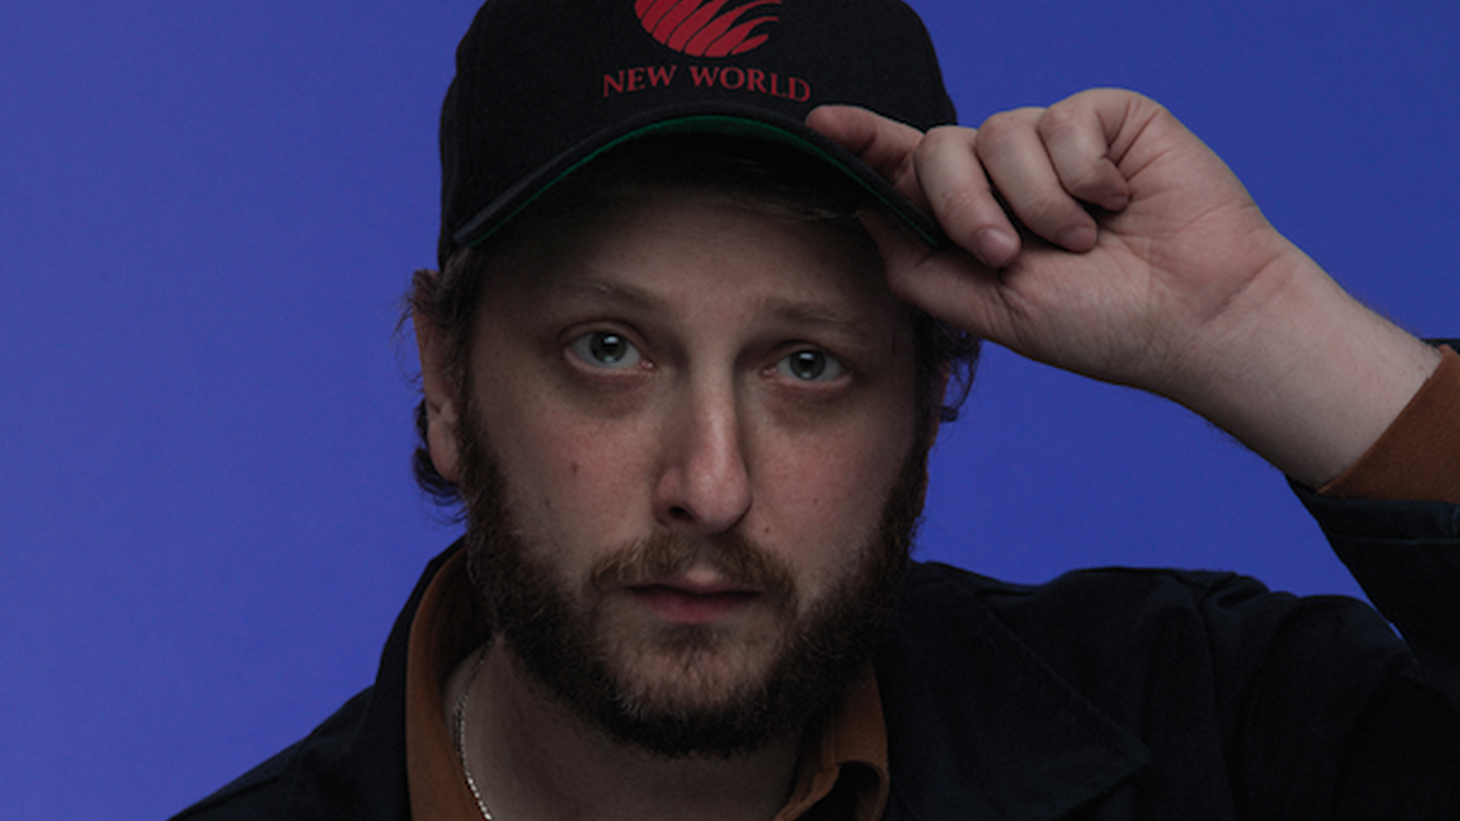 Oneohtrix Point Never is the moniker of Mercury Prize-nominated producer Daniel Lopatin, who joins us for a live set the day after he brings MYRIAD, his acclaimed multi-media installation, to a sold out crowd at Walt Disney Concert Hall.